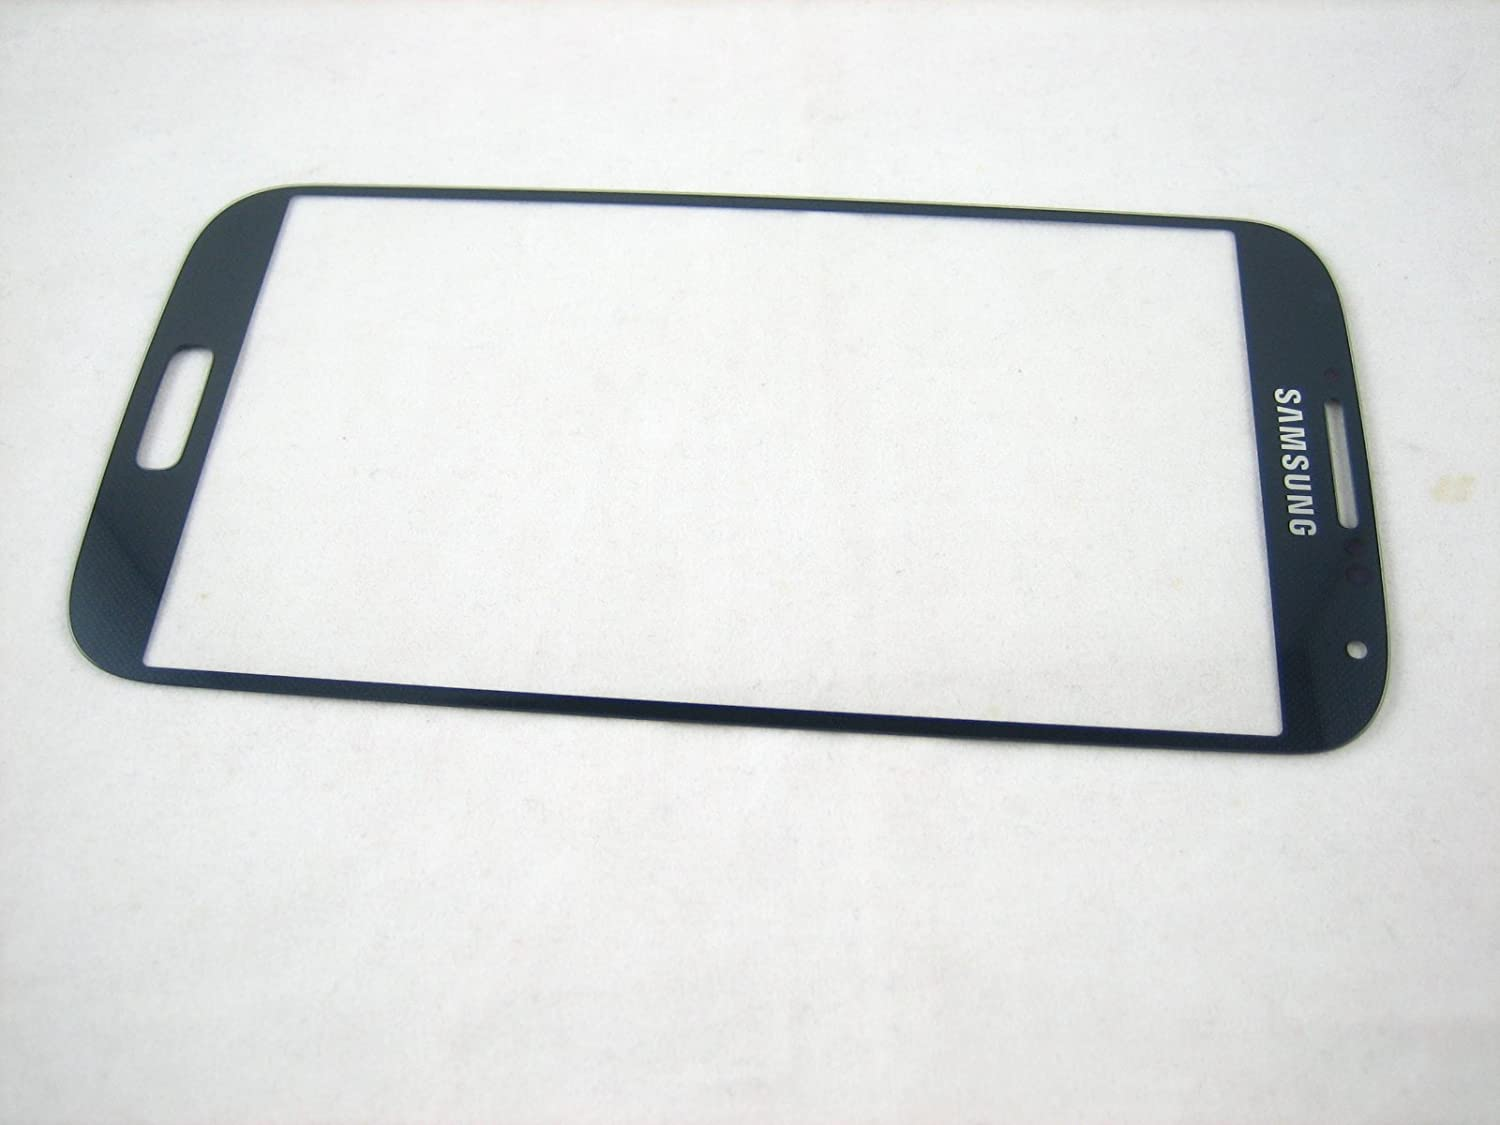 For Samsung Galaxy S4 Siv Gt I9500 I9505 Black Front New All Glass No Display Screen Mobile Phone Repair Part Replacement Cell Phones